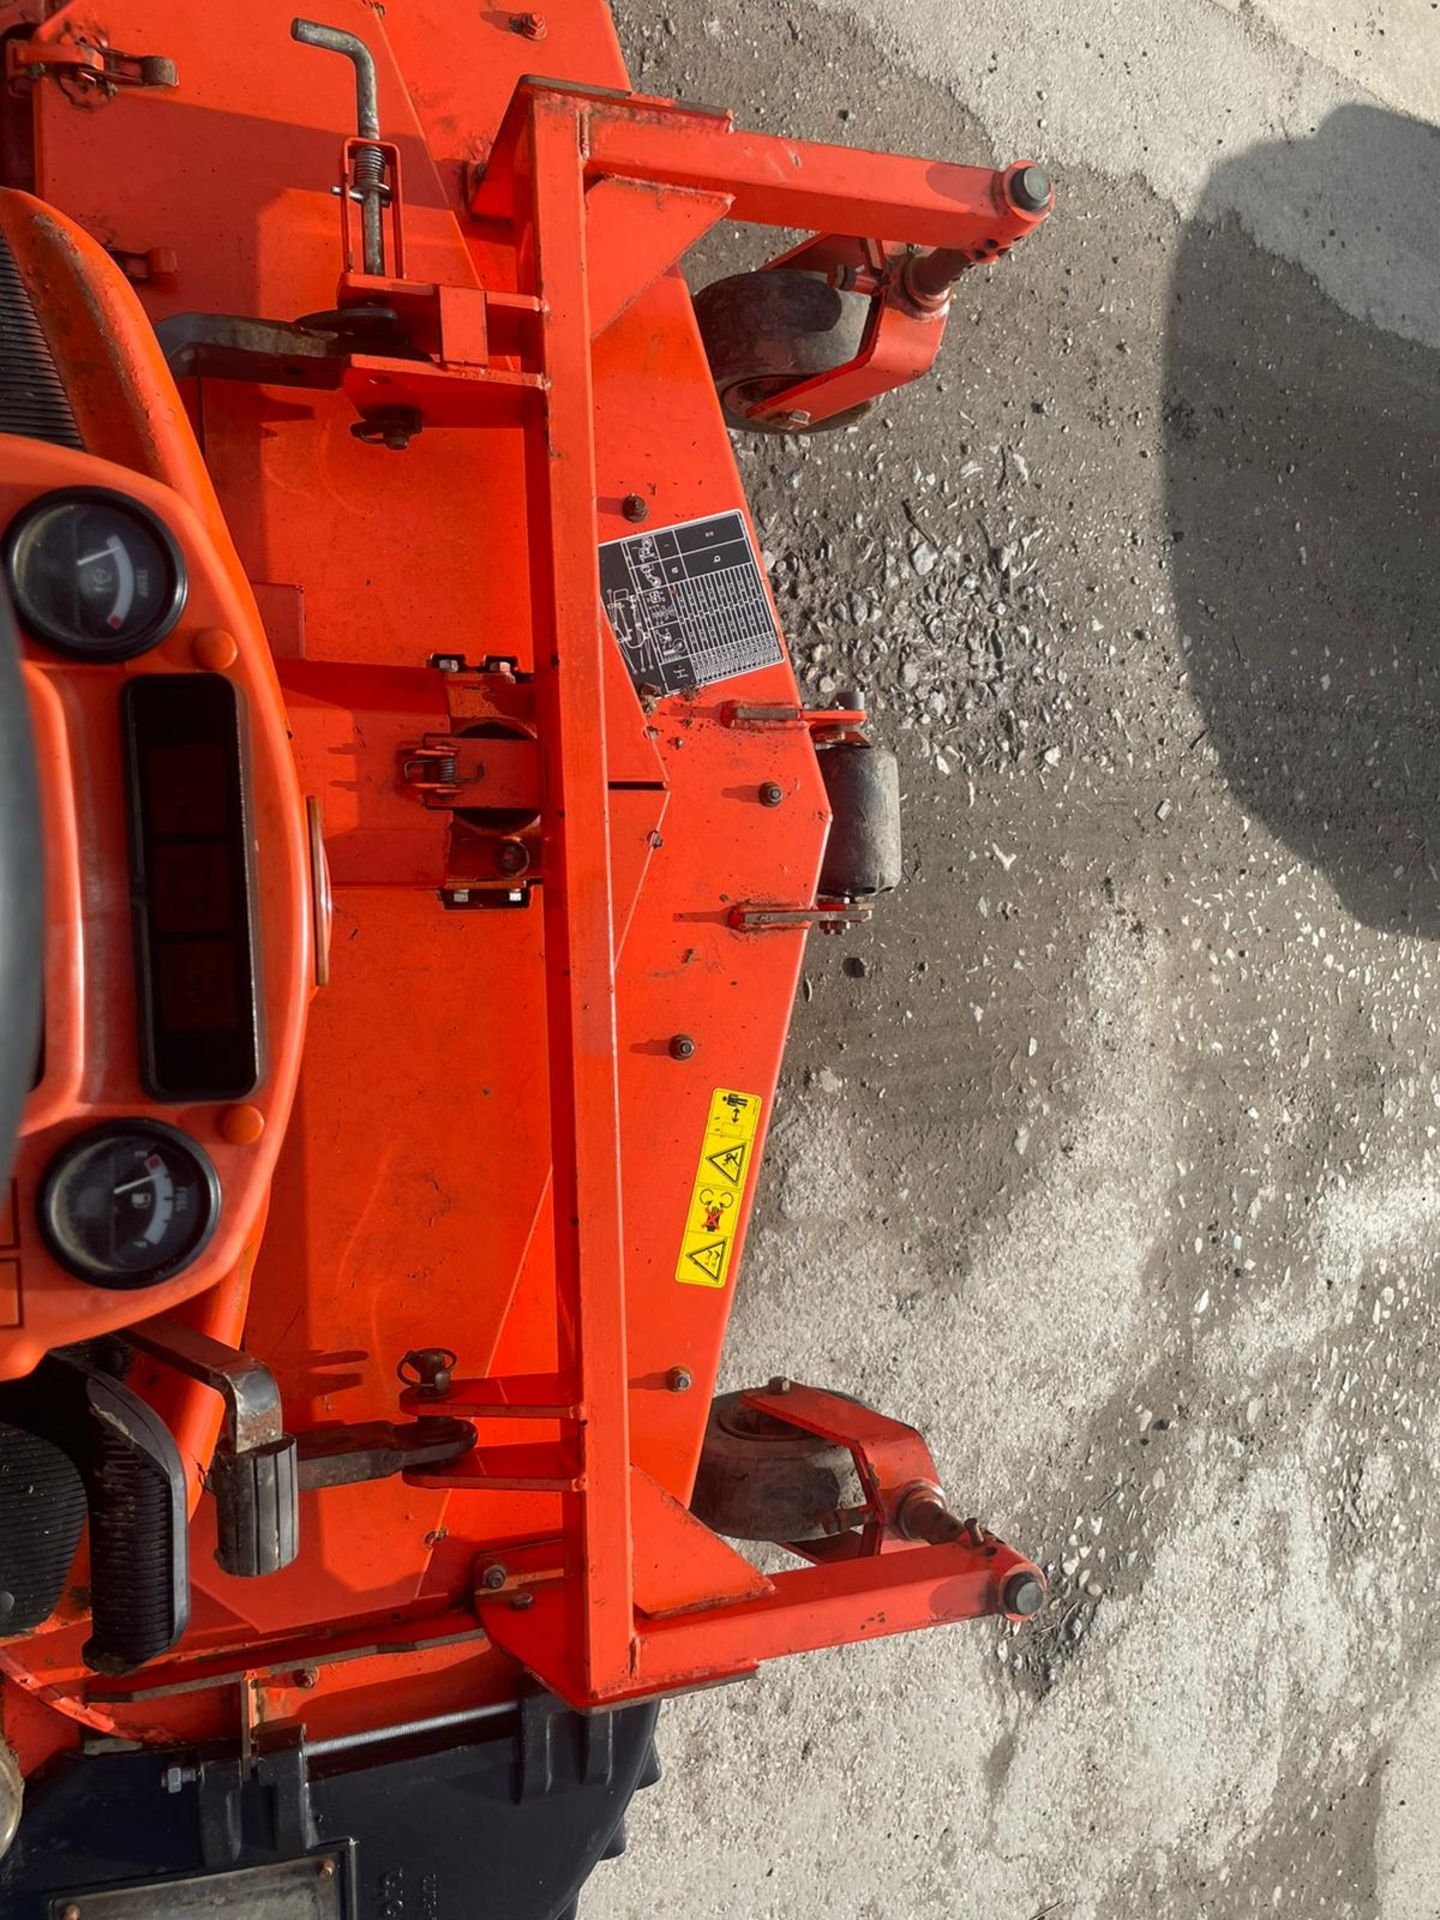 2011 KUBOTA F3680 OUT FRONT RIDE ON LAWN MOWER HIGH TIP COLLECTOR, 4 WHEEL DRIVE, PLUS VAT - Image 6 of 7